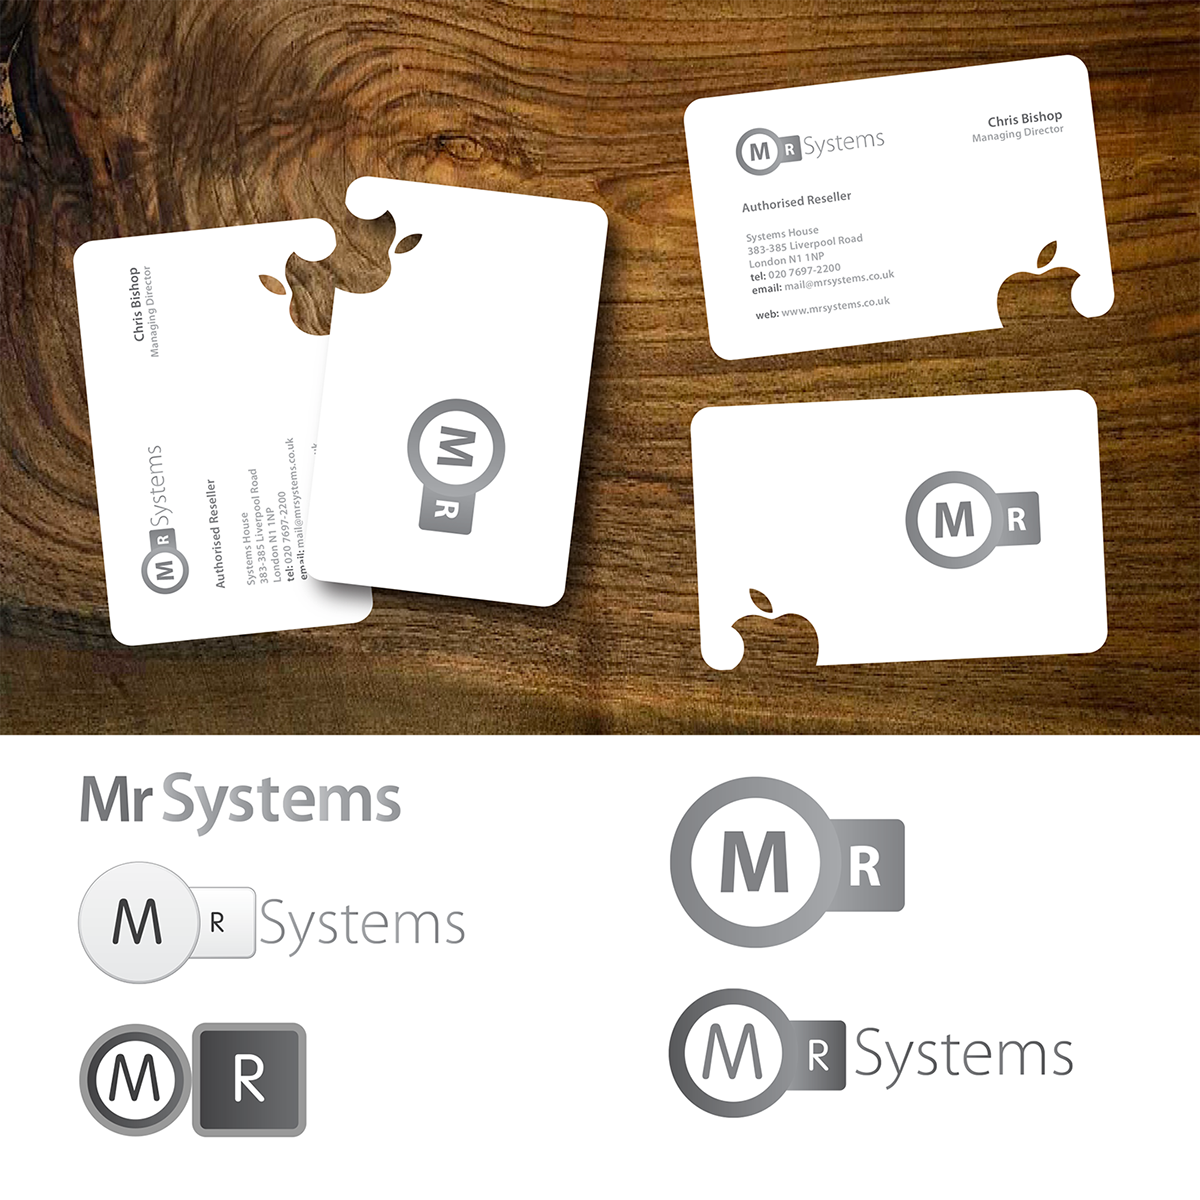 MR Systems